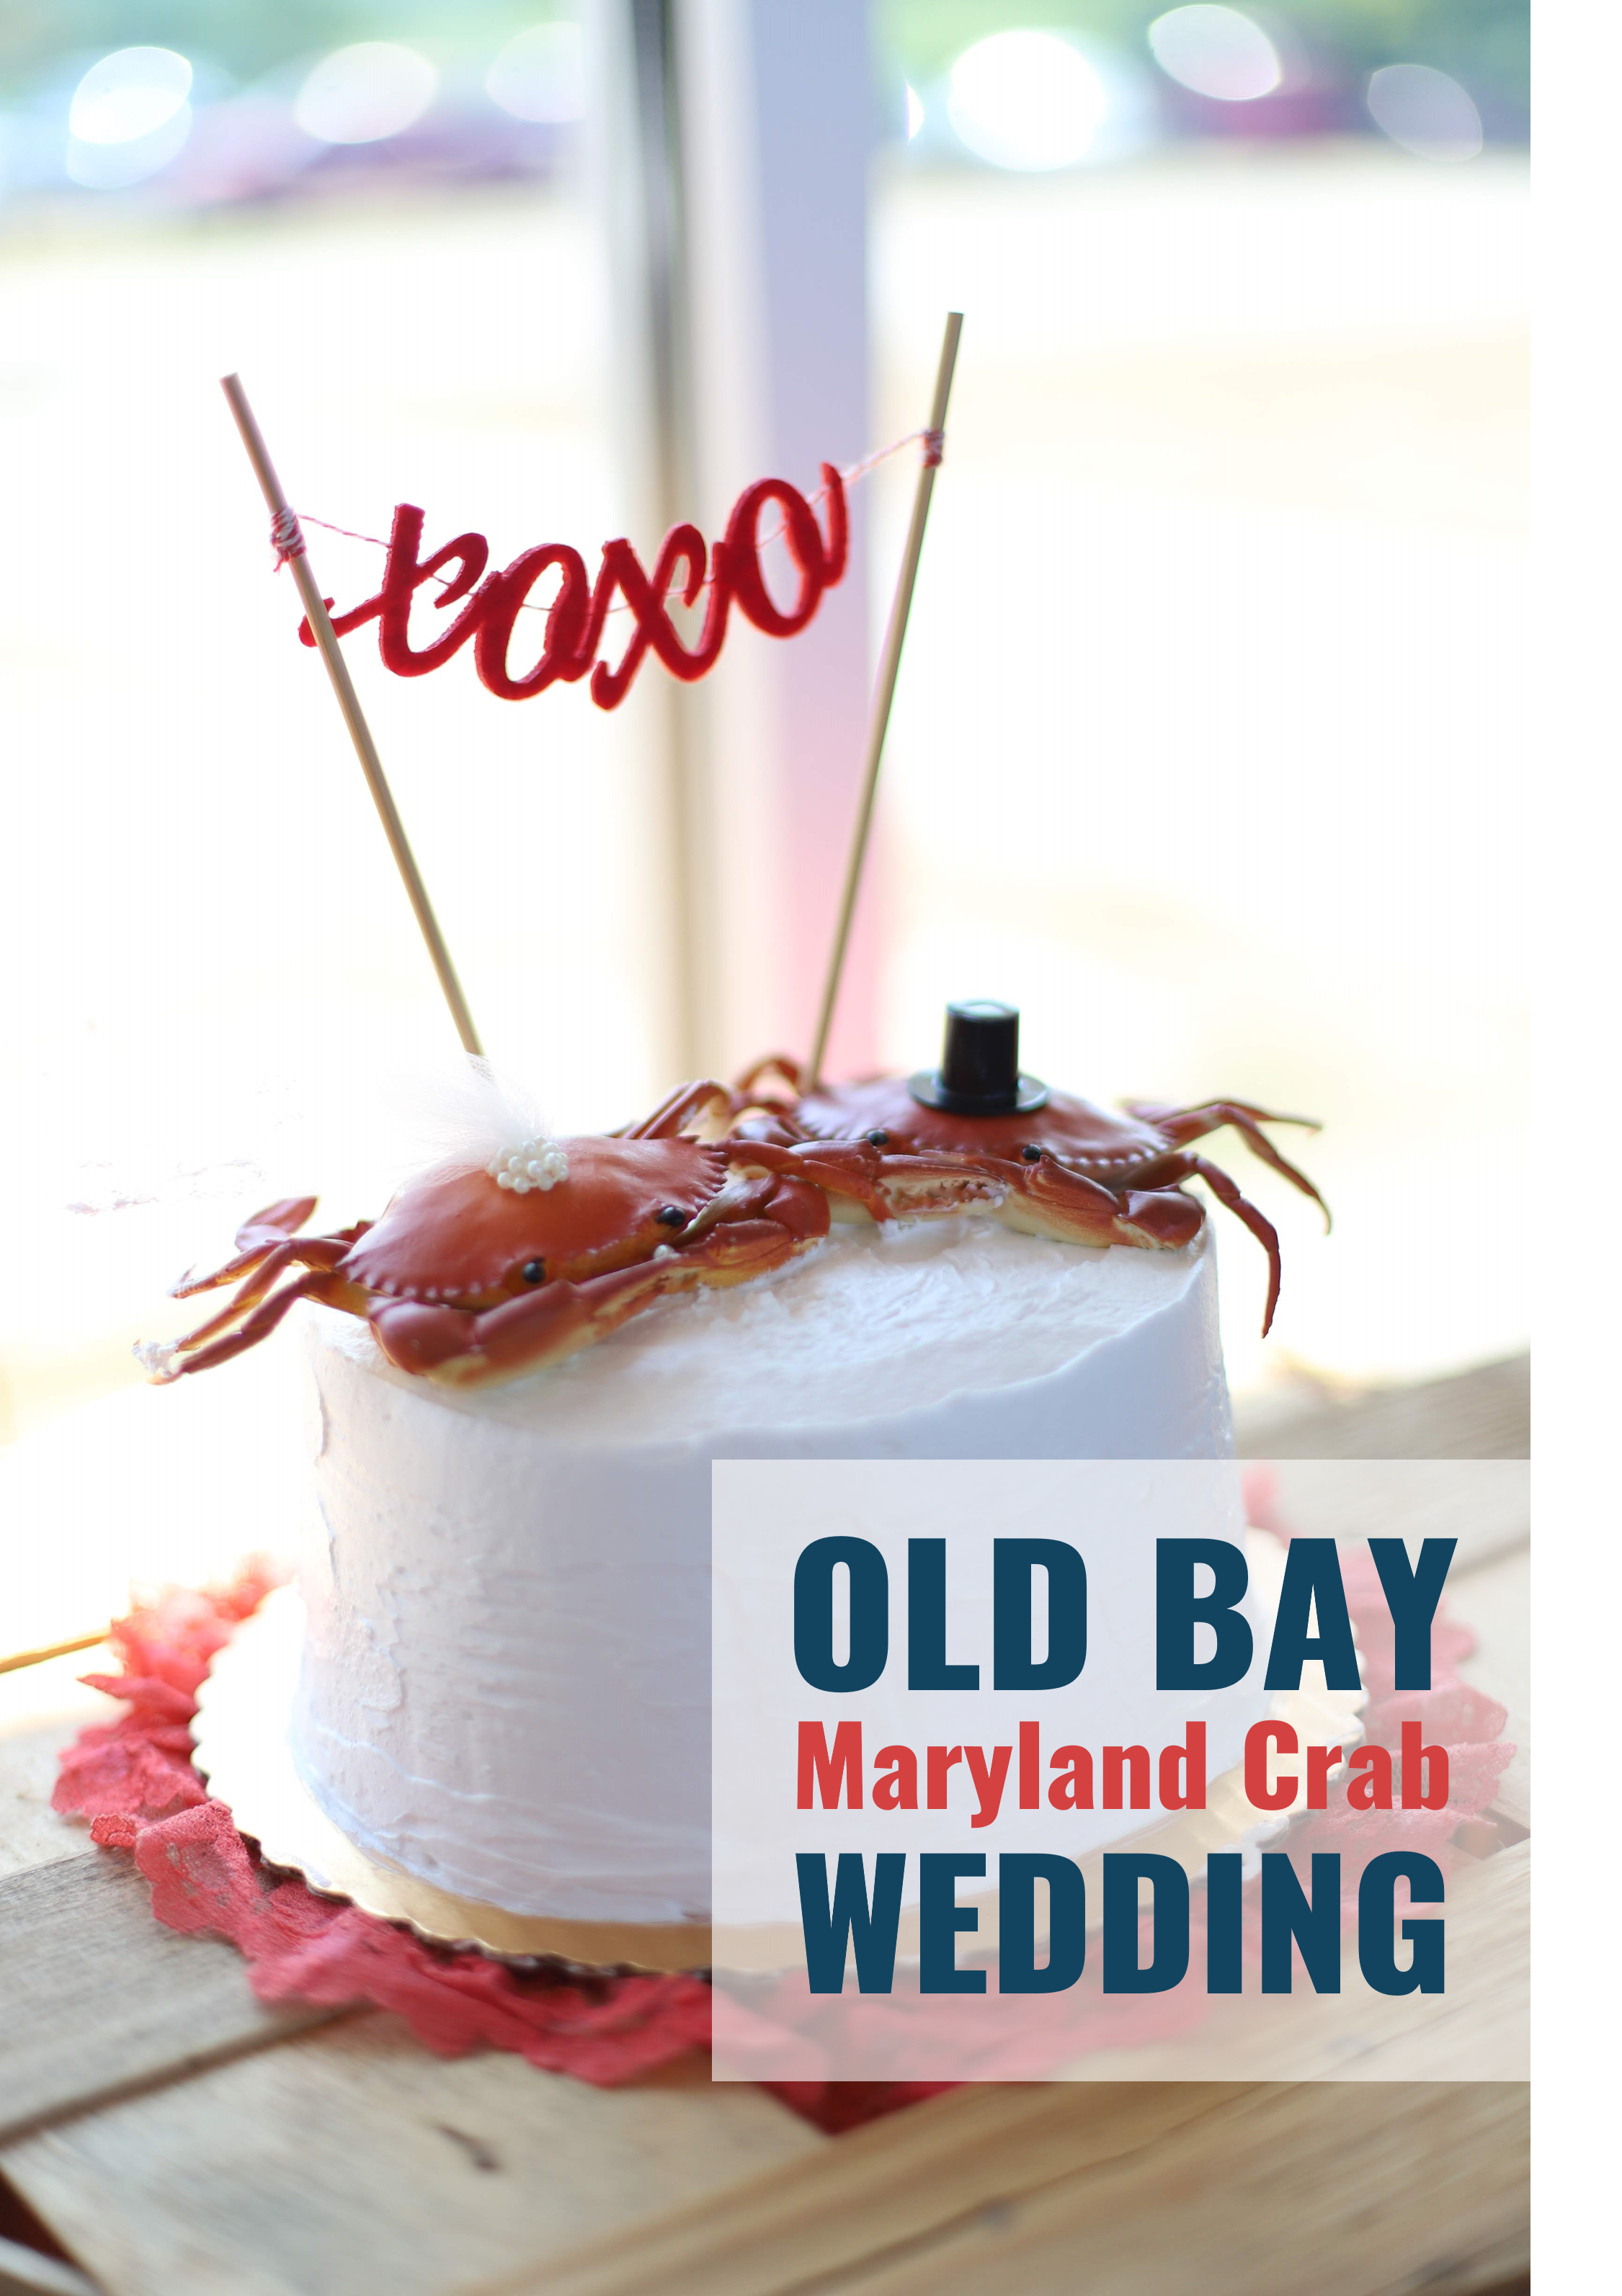 38_old_bay_wedding_tangled.png